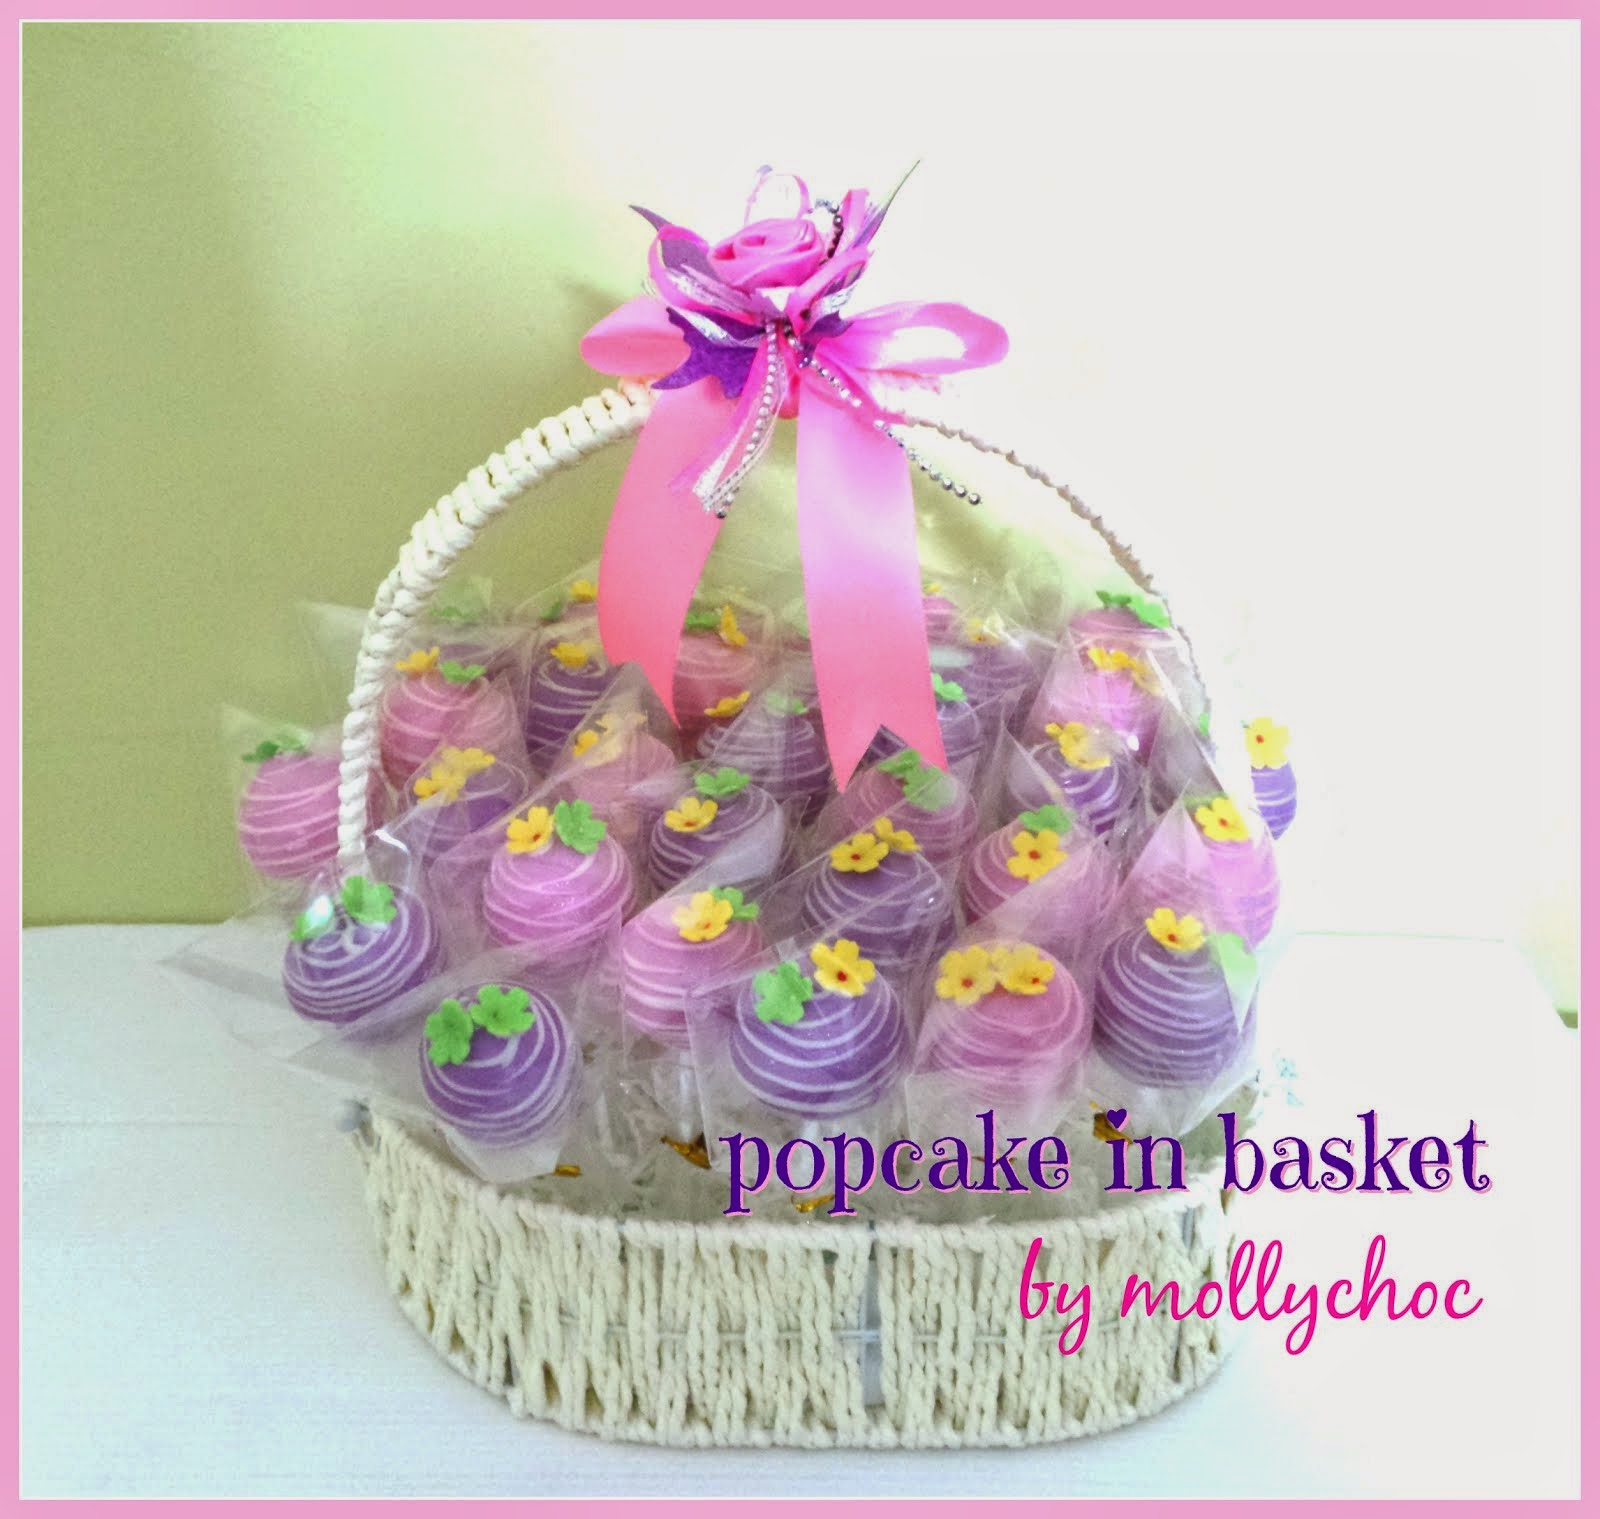 Popcake in Basket